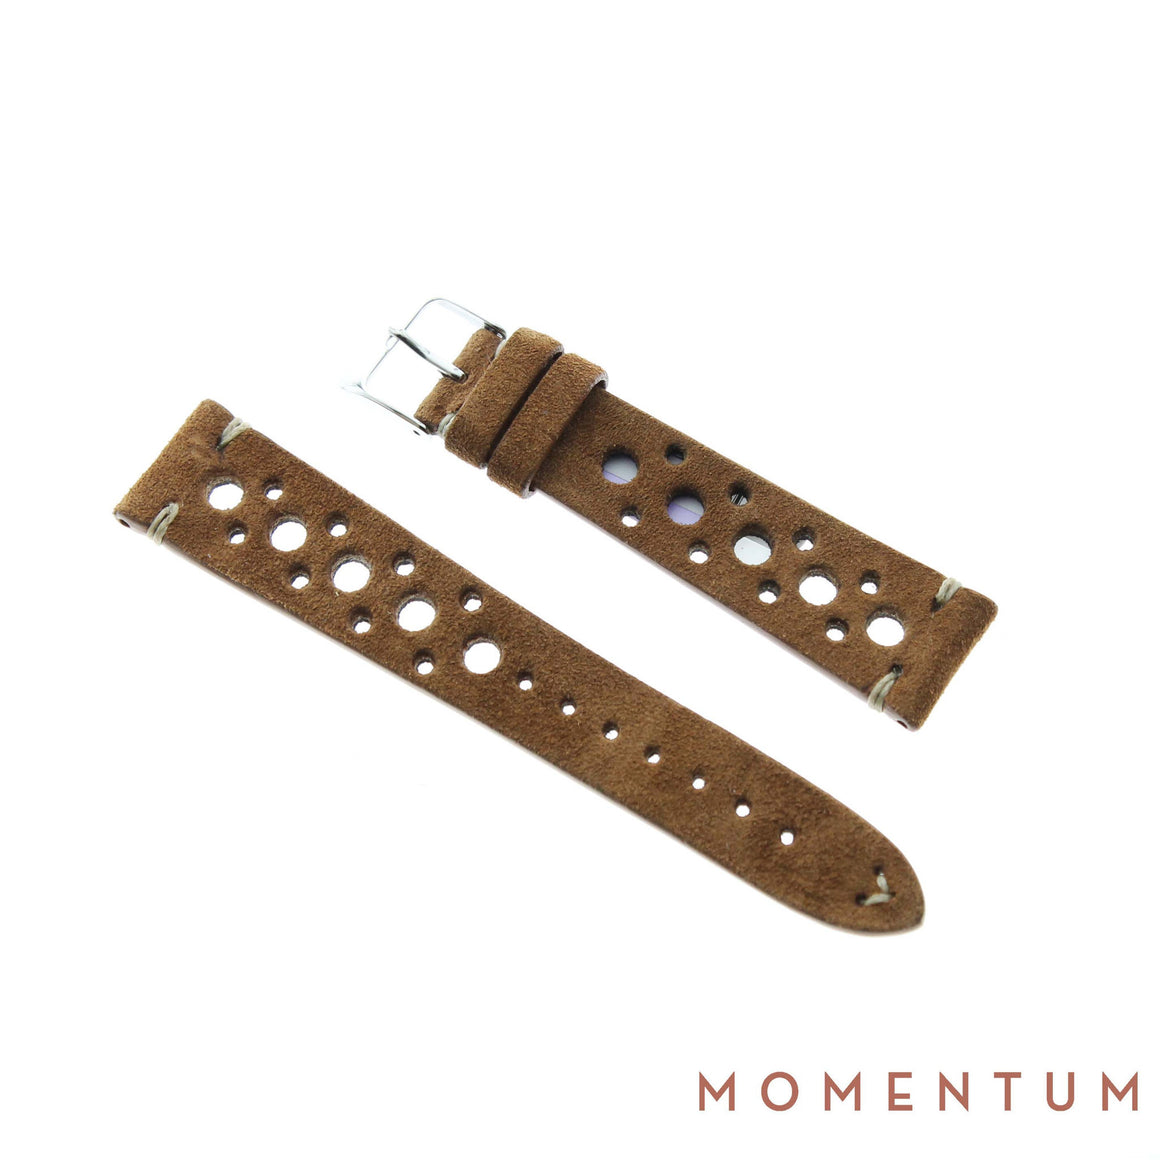 Vintage Strap - Chocolate Suede with holes - Calf Leather - Momentum Dubai